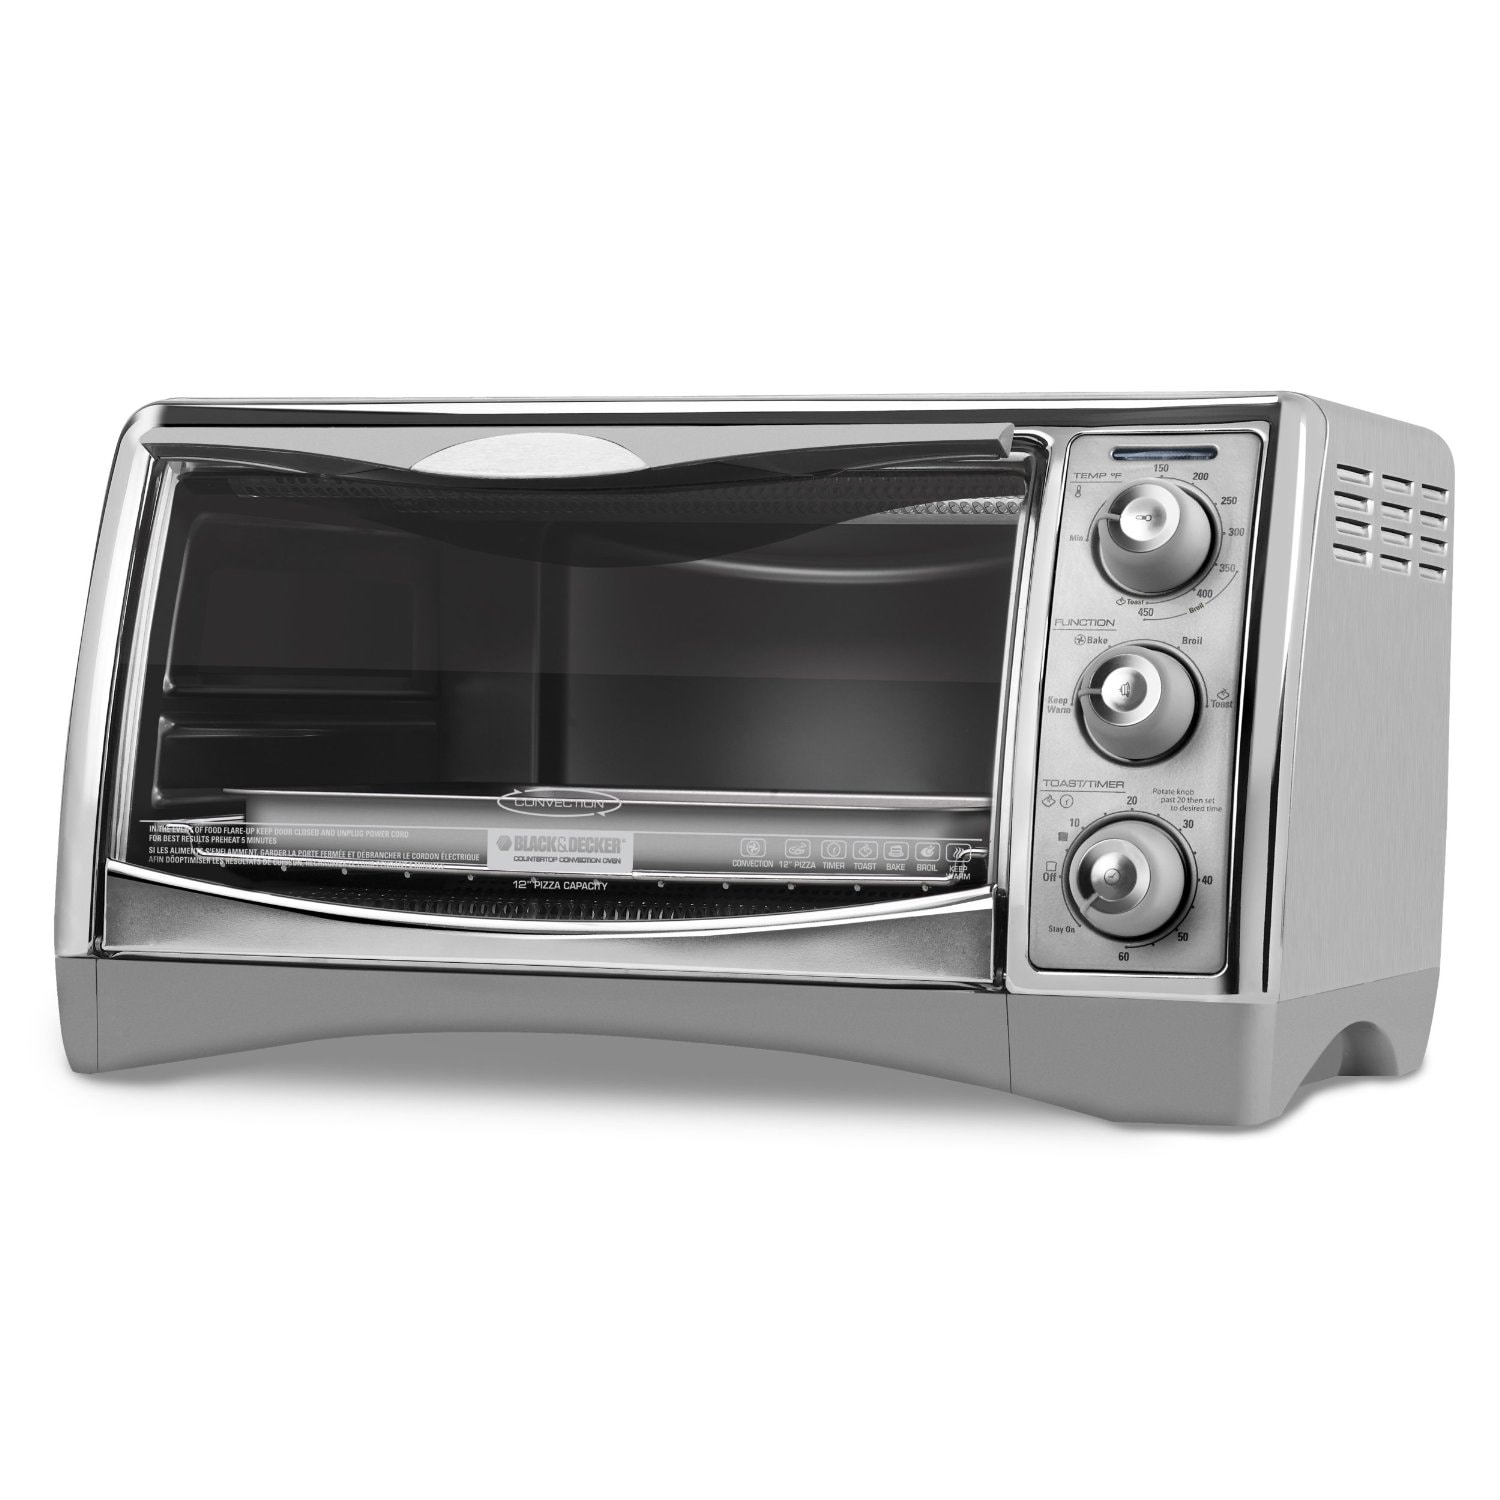 Countertop Toaster Convection Oven Reviews : Black & Decker CTO4500S 6-Slice CounterTop Convection Oven with Pizza ...